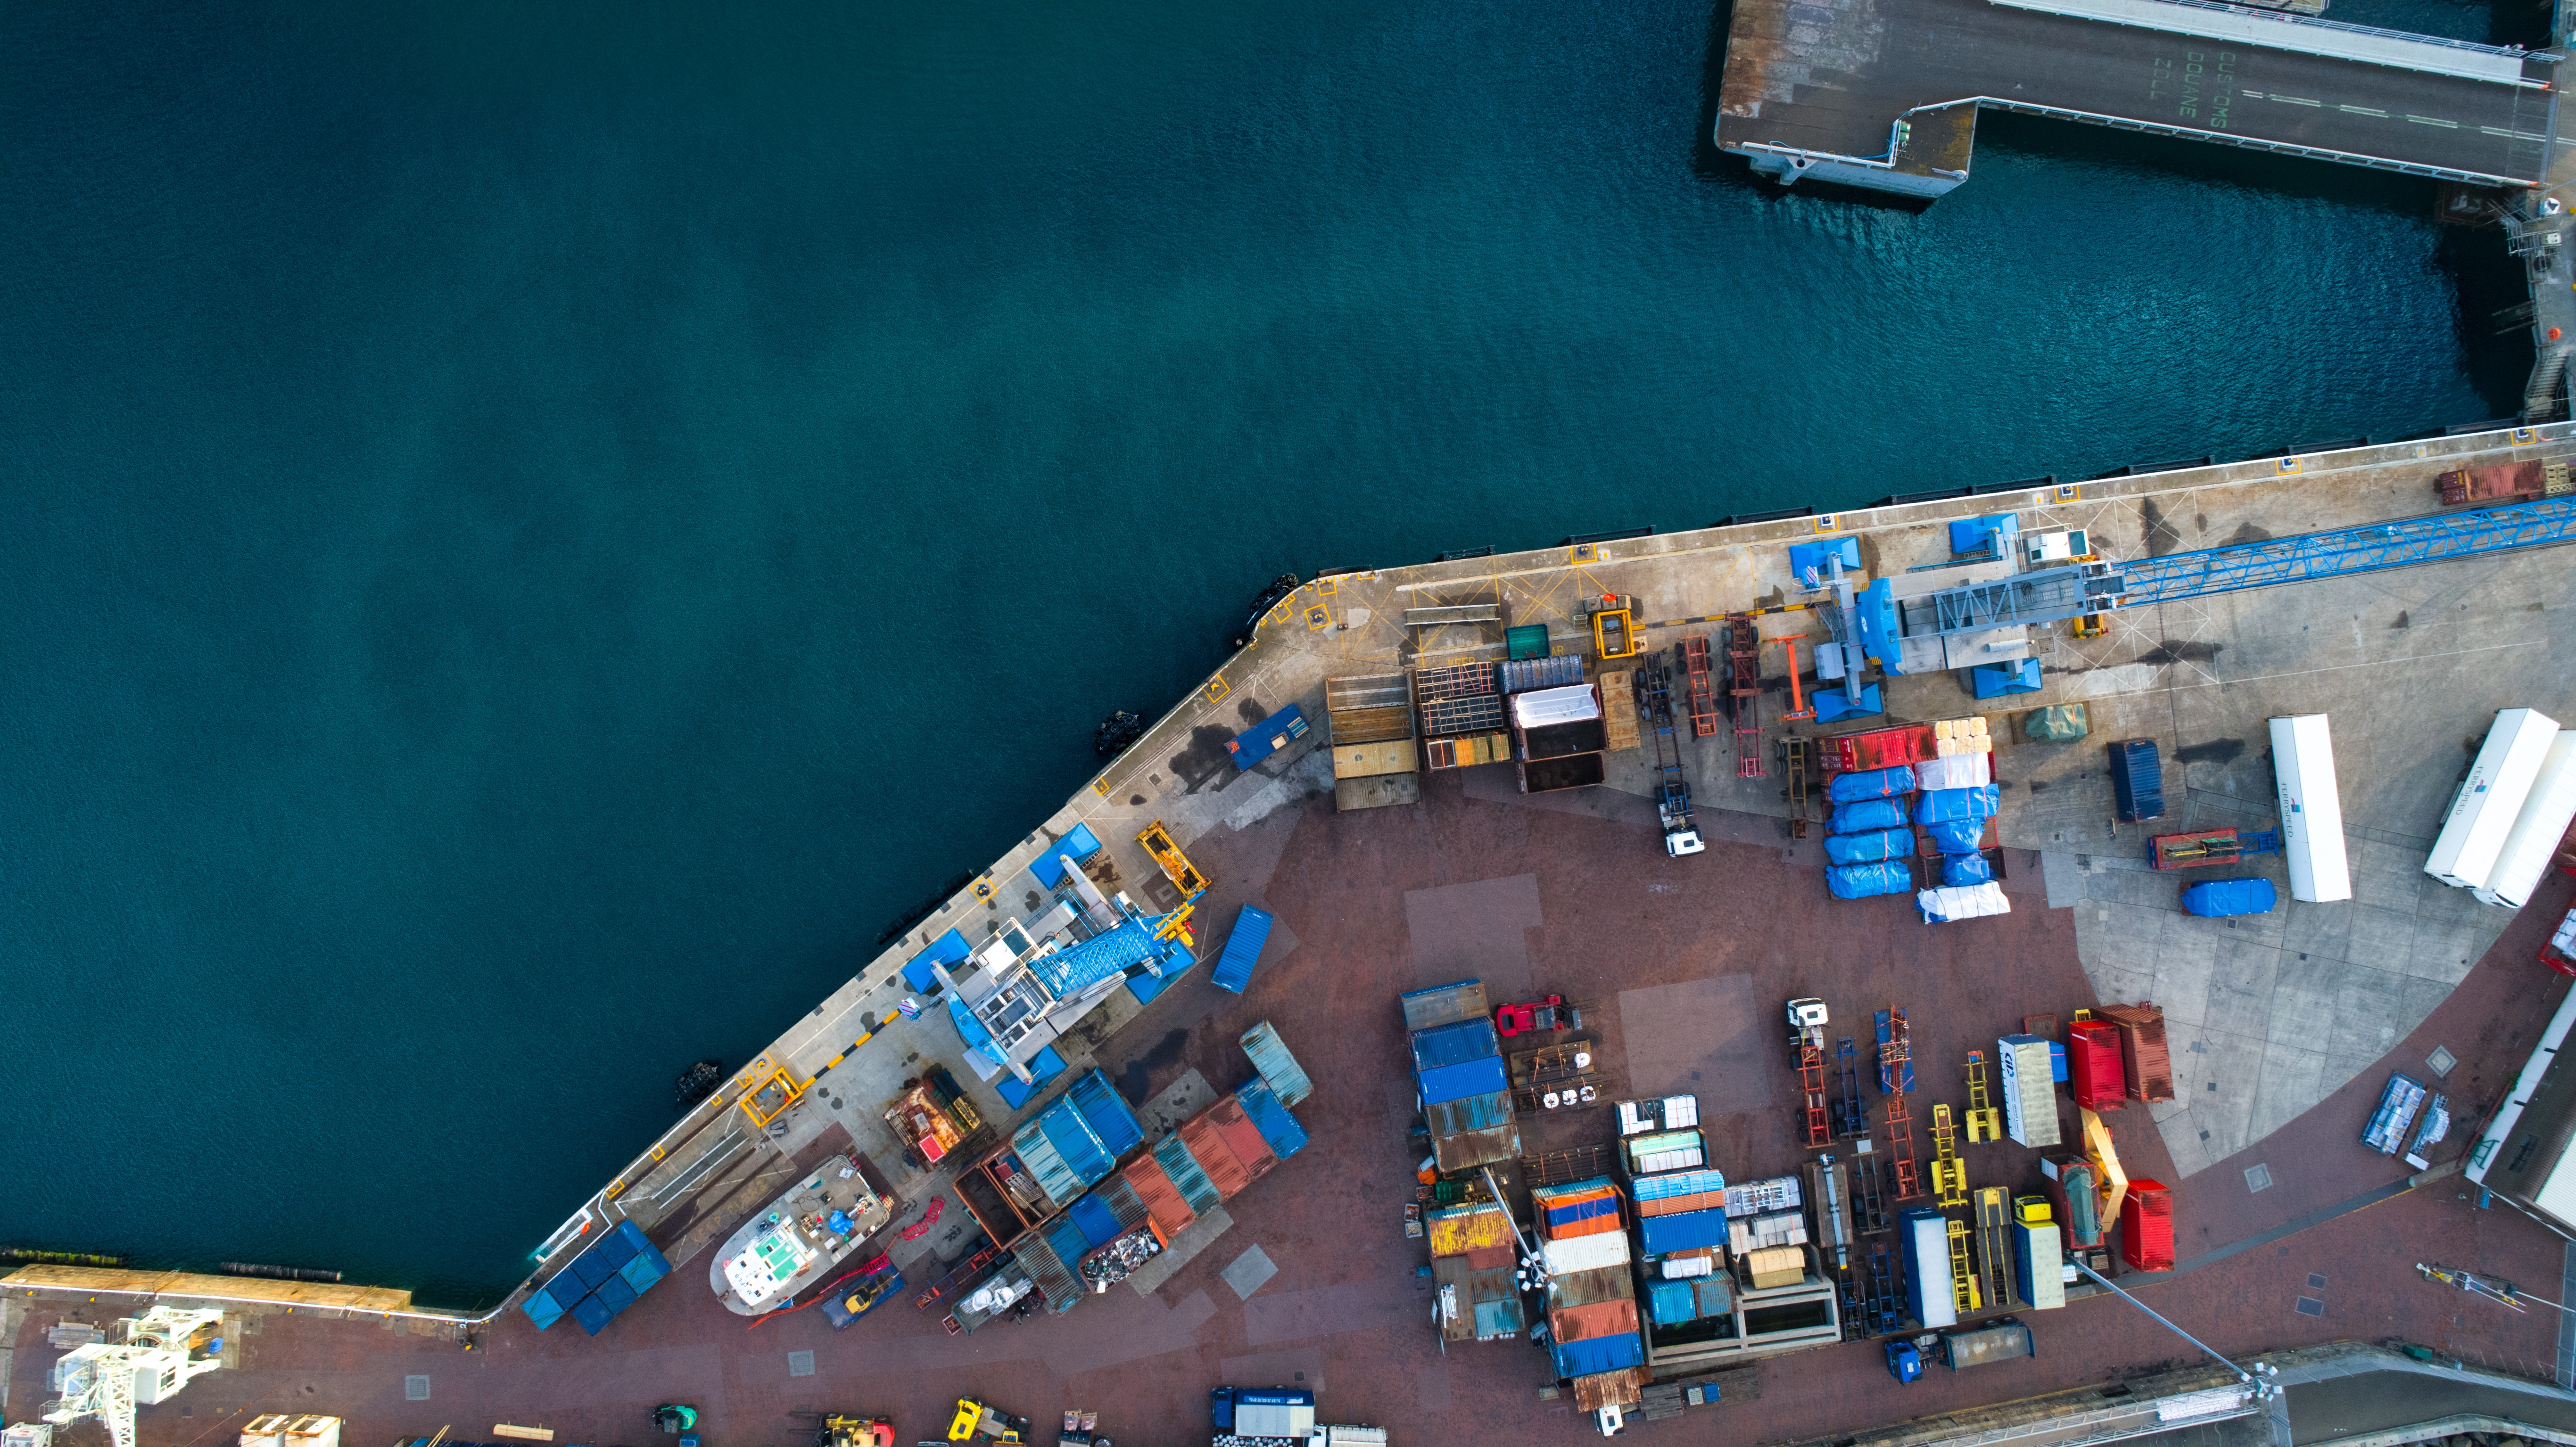 aerial photography of dock containers near body of water during daytime